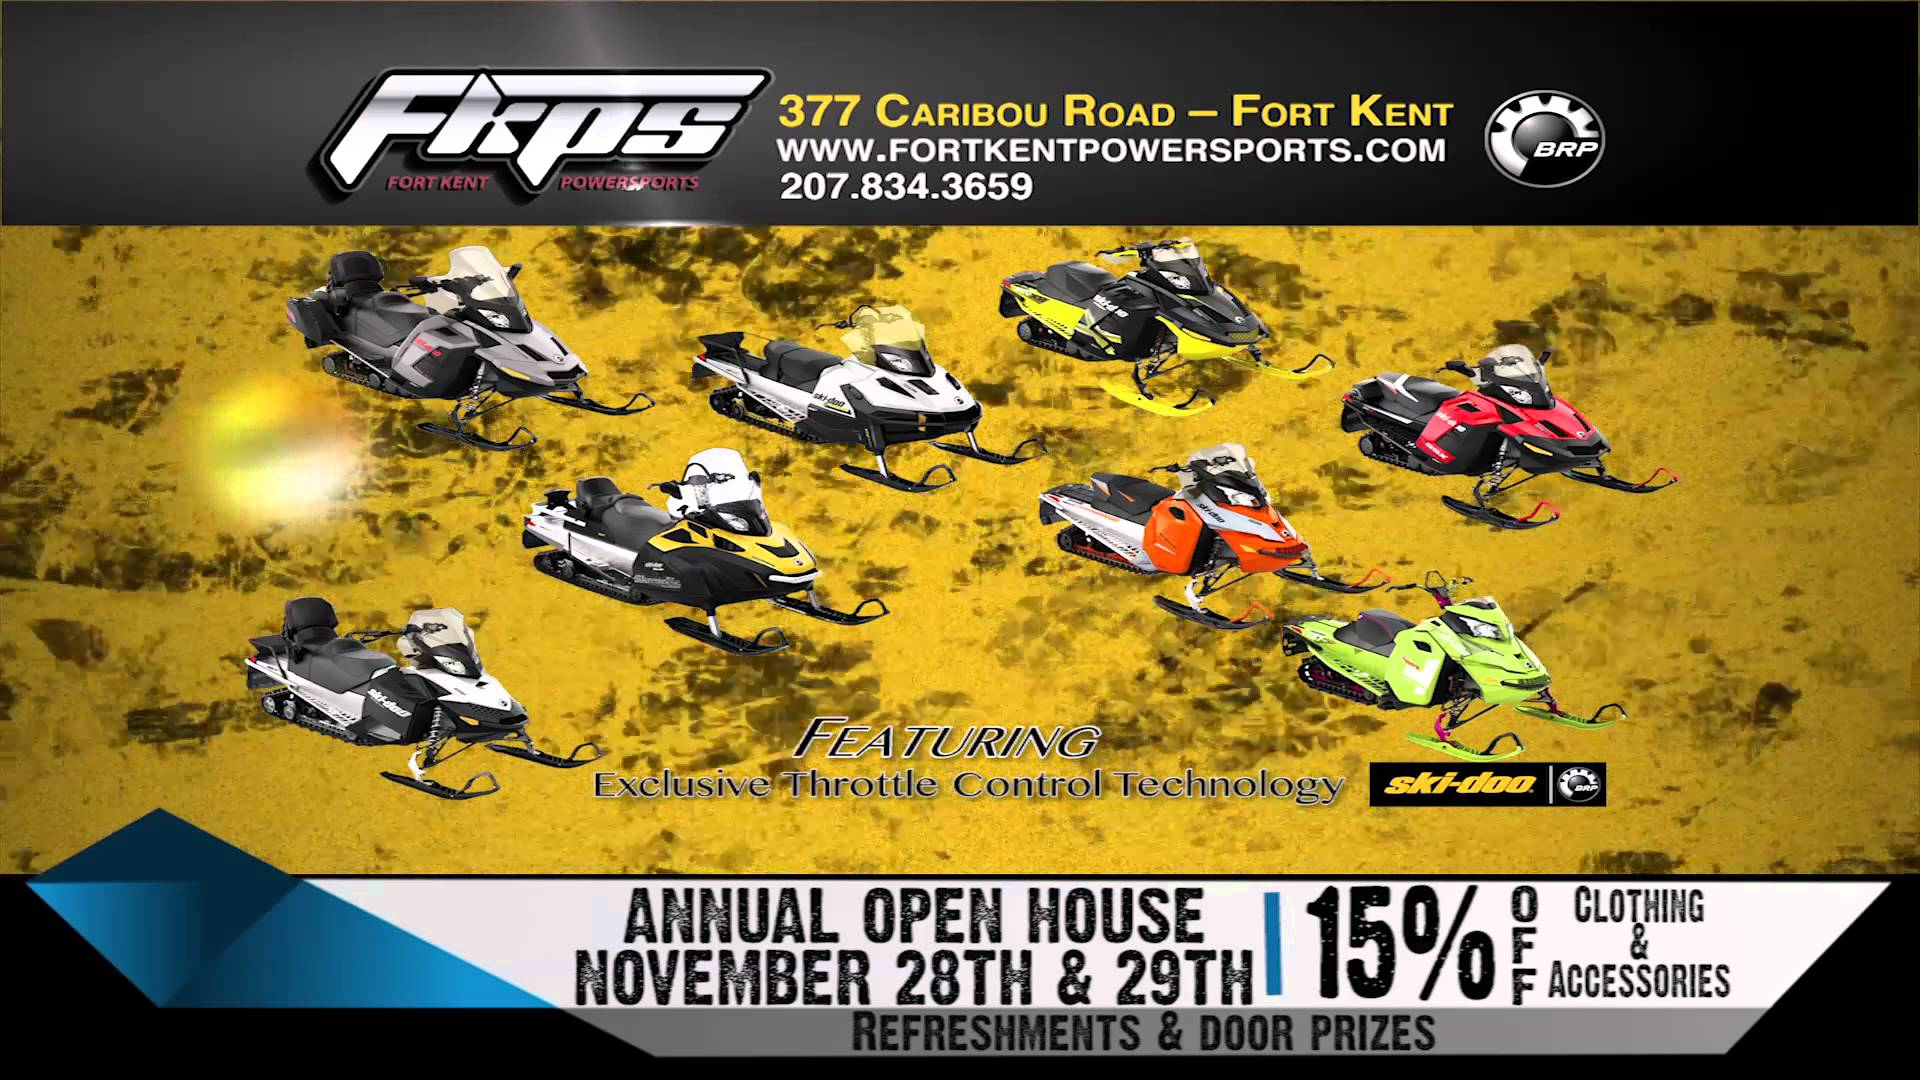 FORT KENT POWERSPORTS BRP OPEN HOUSE 1114 RMVP226A HD